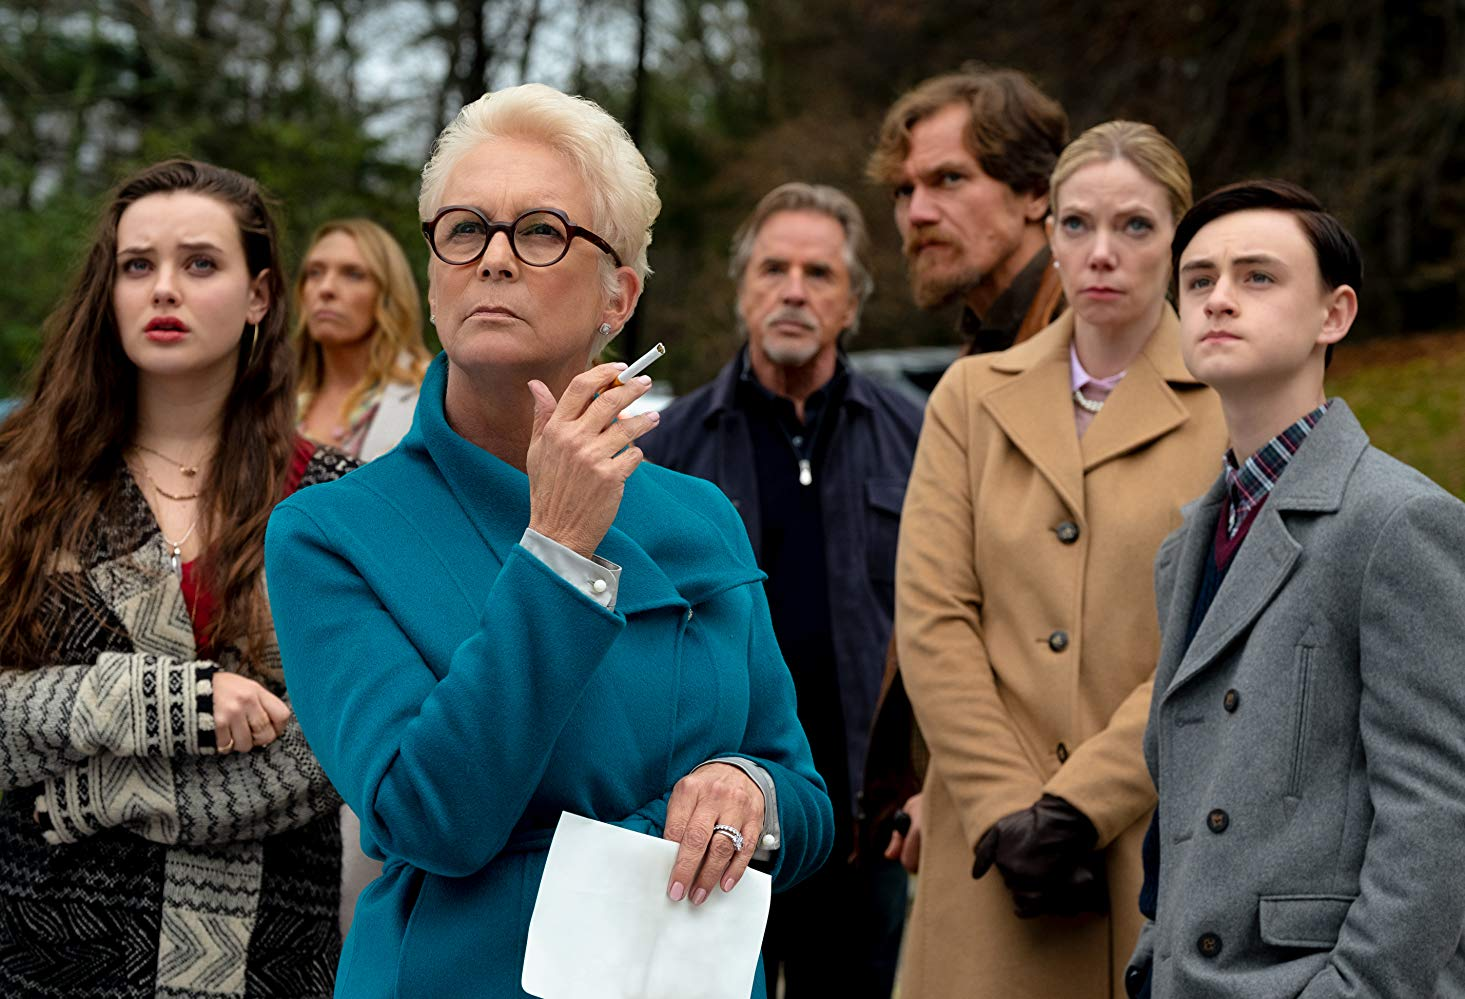 Jamie Lee Curtis, Toni Collette, Riki Lindhome, Don Johnson, Michael Shannon, Jaeden Martell, and Katherine Langford in Knives Out (Lionsgate/TNS)